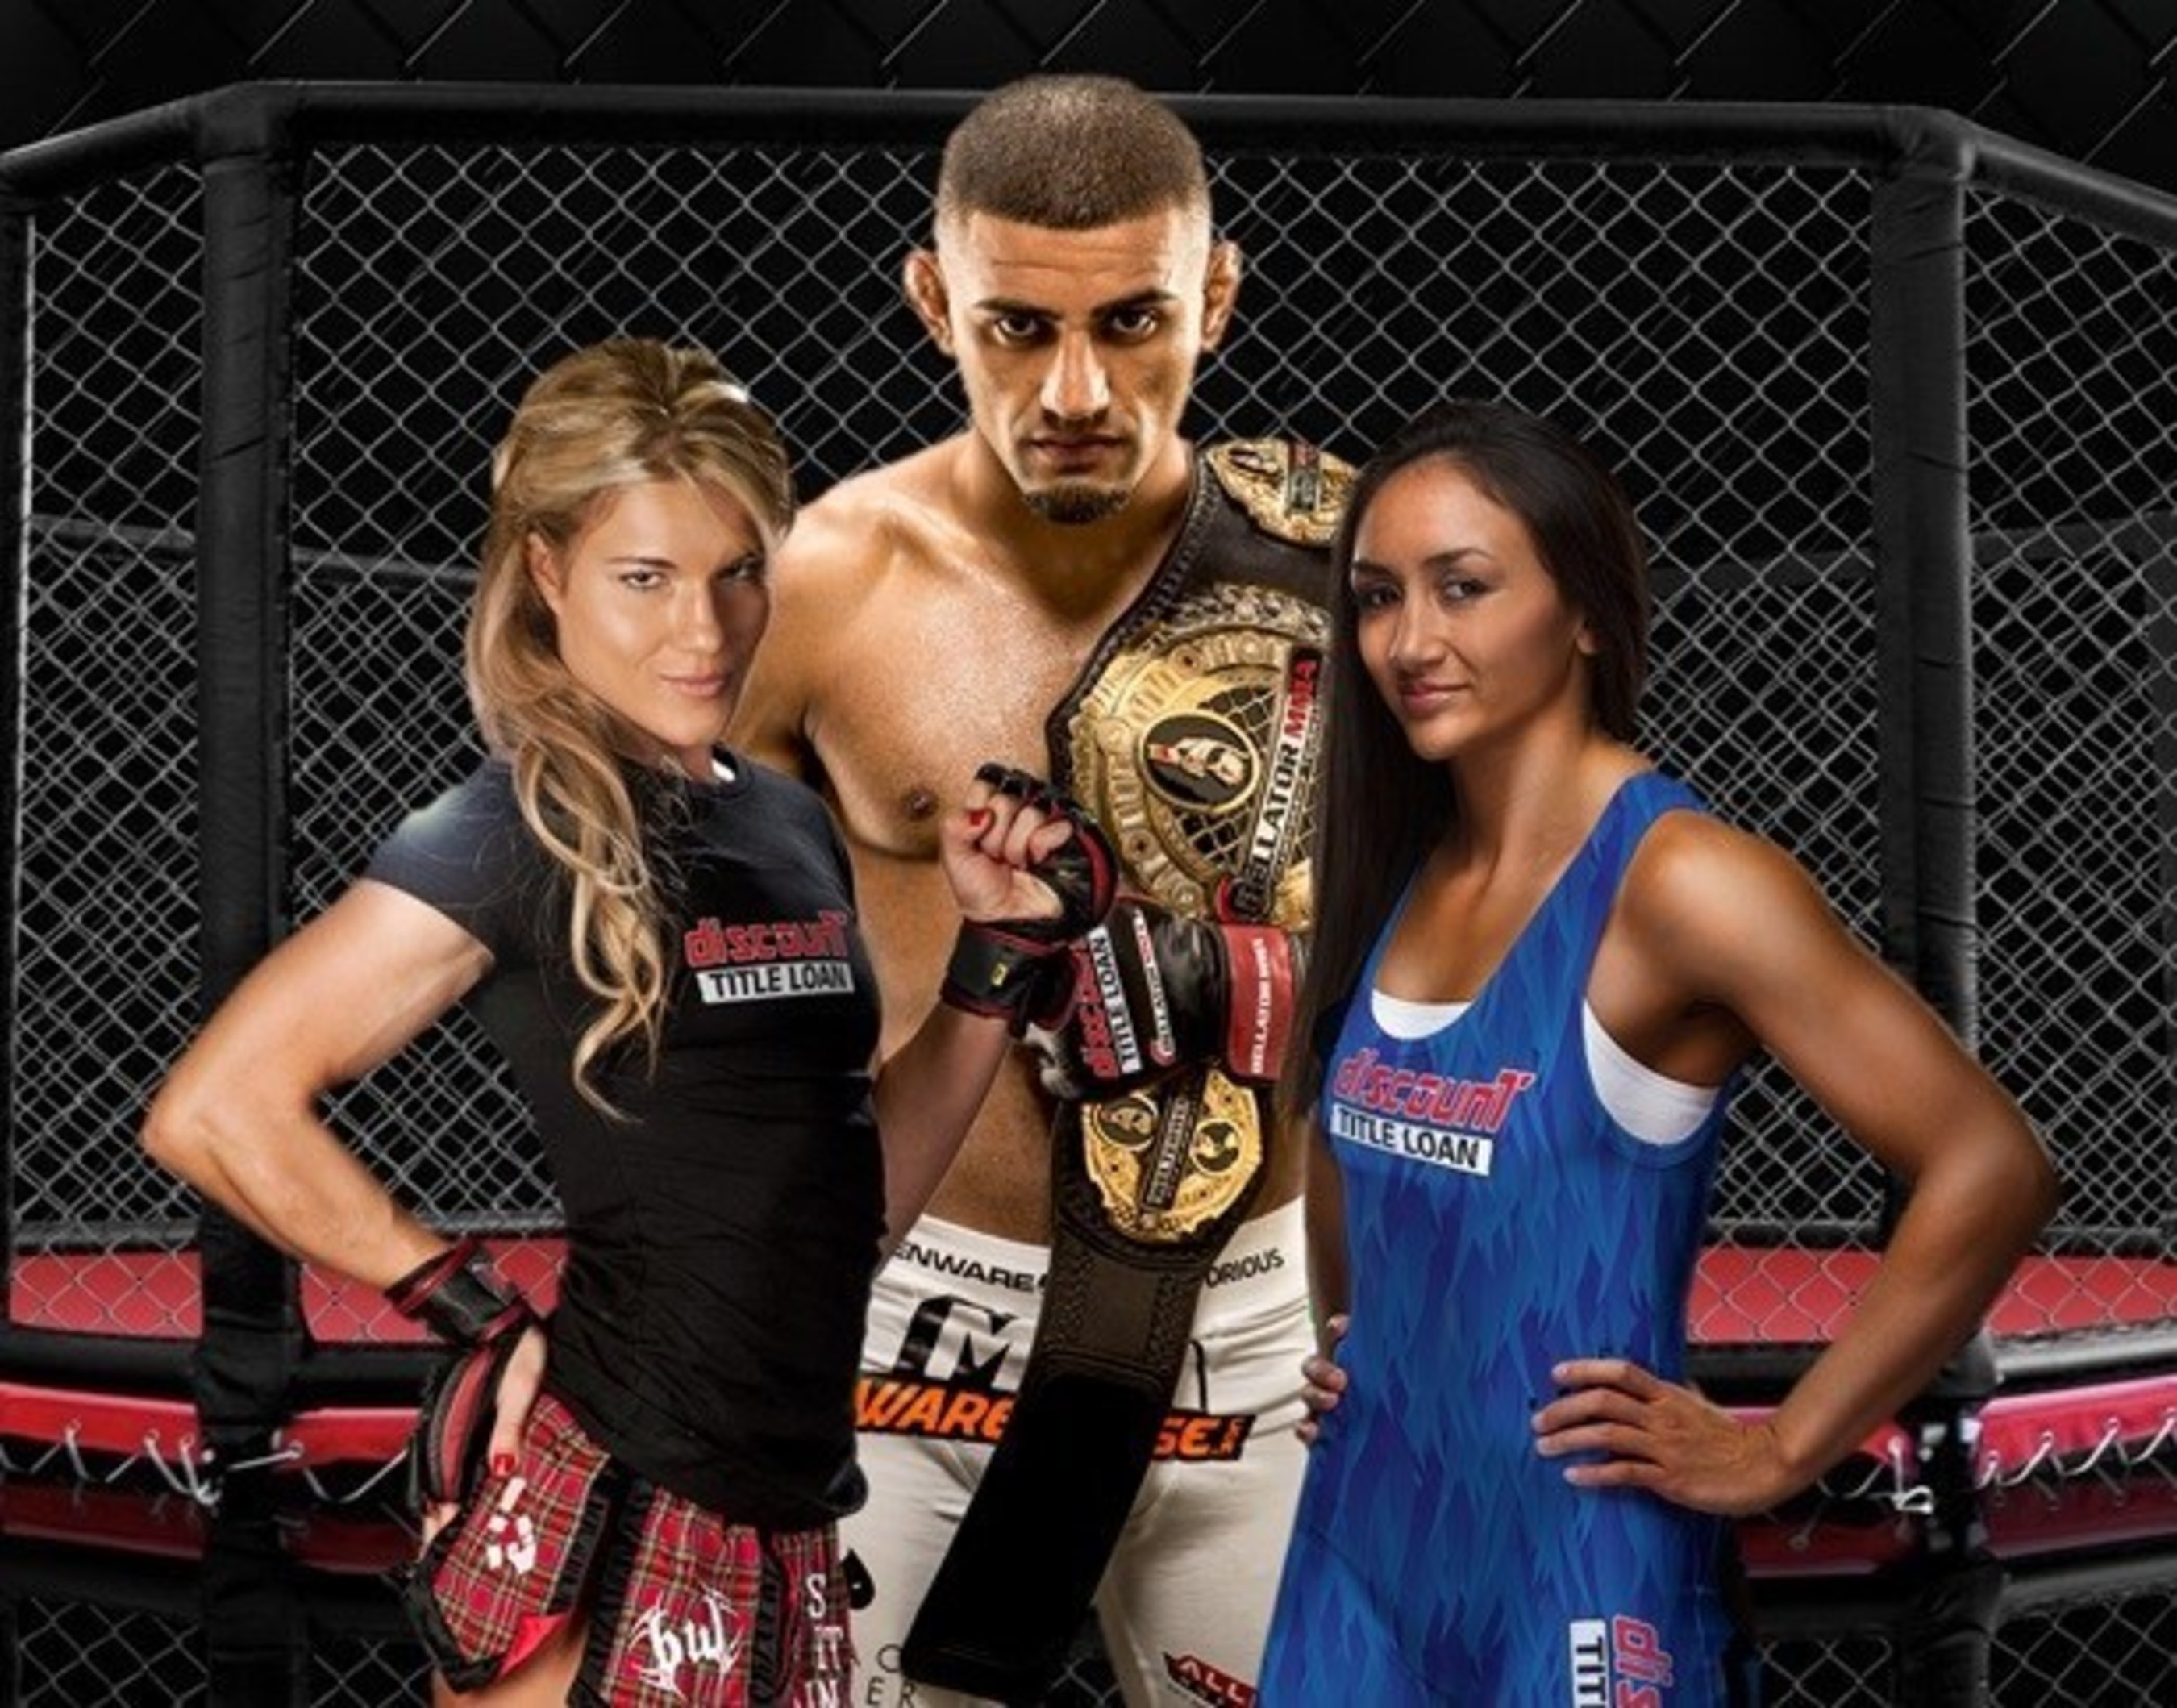 "Bellator Welterweight Champion Douglas Lima, UFC Strawweight Champion Carla Esparza and the head turning, controversial Ultimate Fighter 20 quarterfinalist Felice Herrig, a Mixed Martial Arts ""Dream Team"" will be representing the consumer finance company, Discount Title Loan, as brand ambassadors. All three athletes are represented by SuckerPunch Entertainment and collectively hold more than six professional Championship Titles."